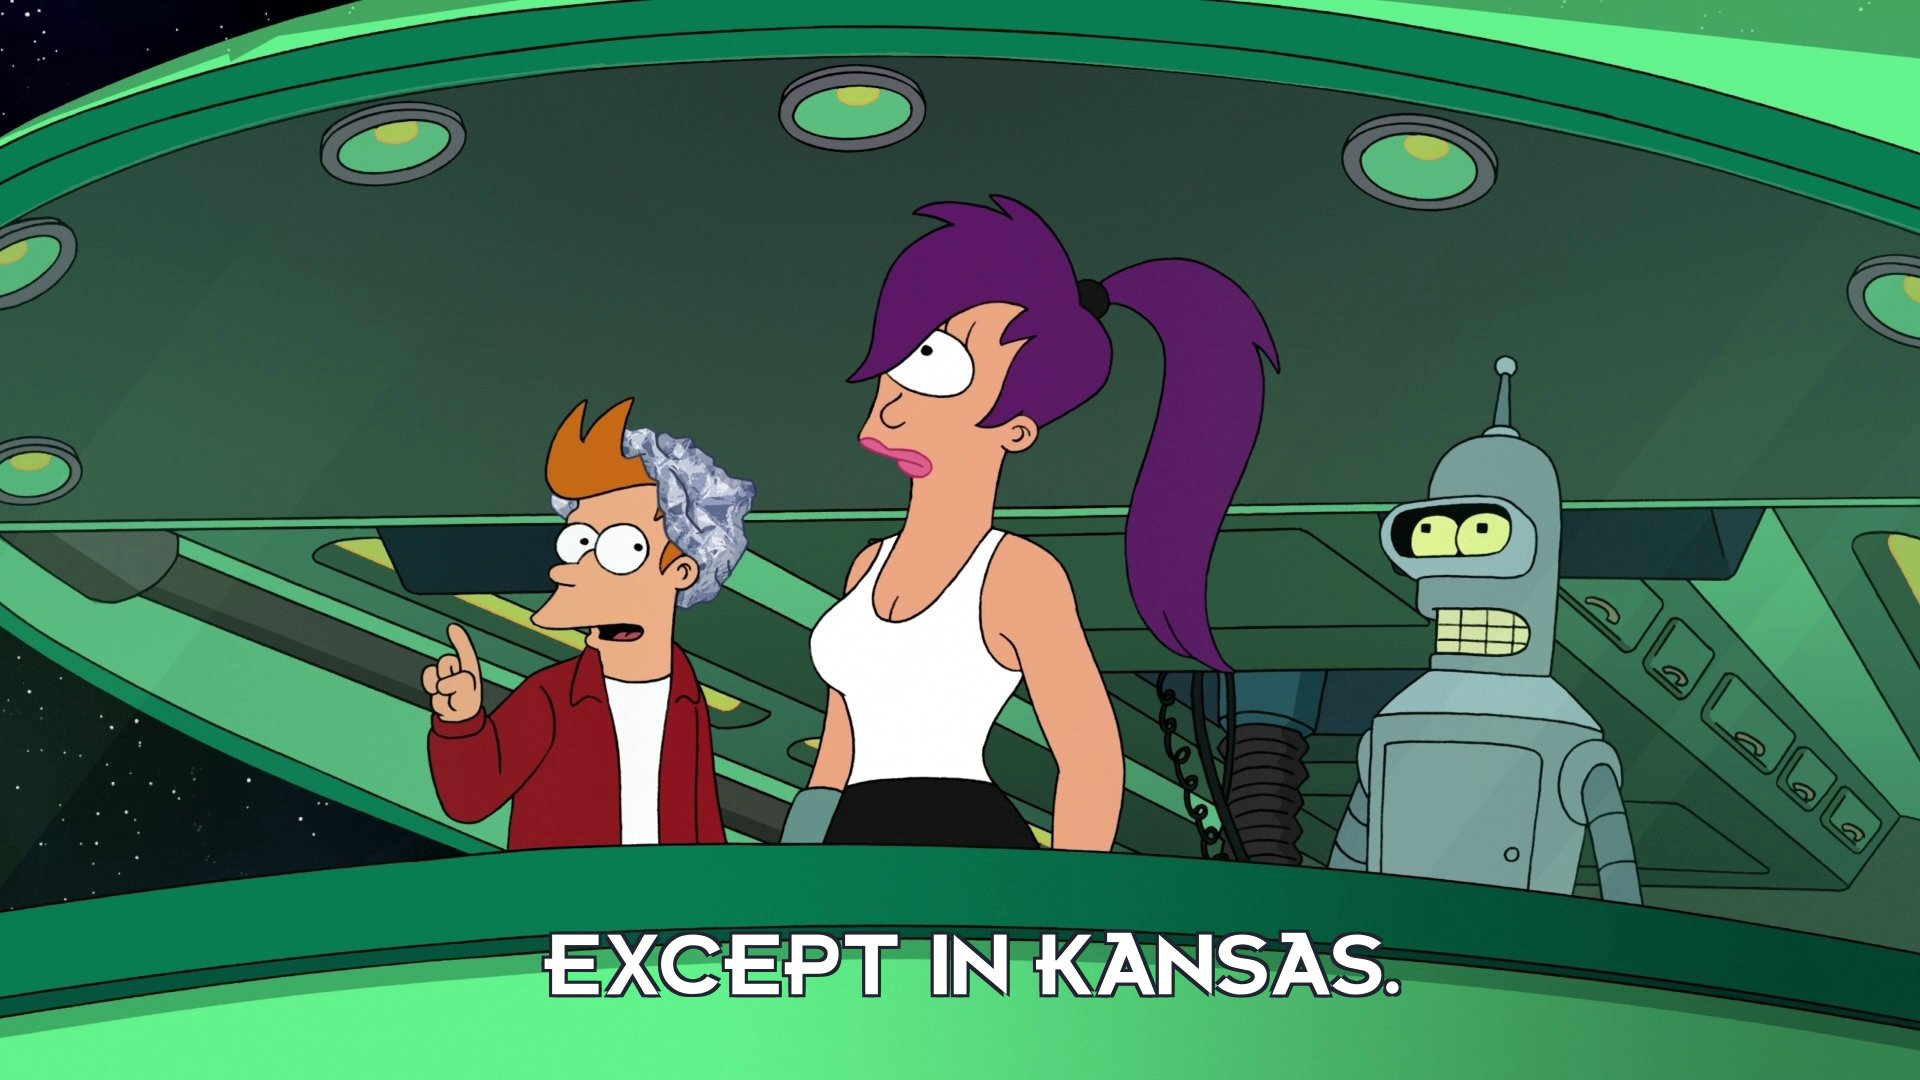 Philip J Fry: Except in Kansas.